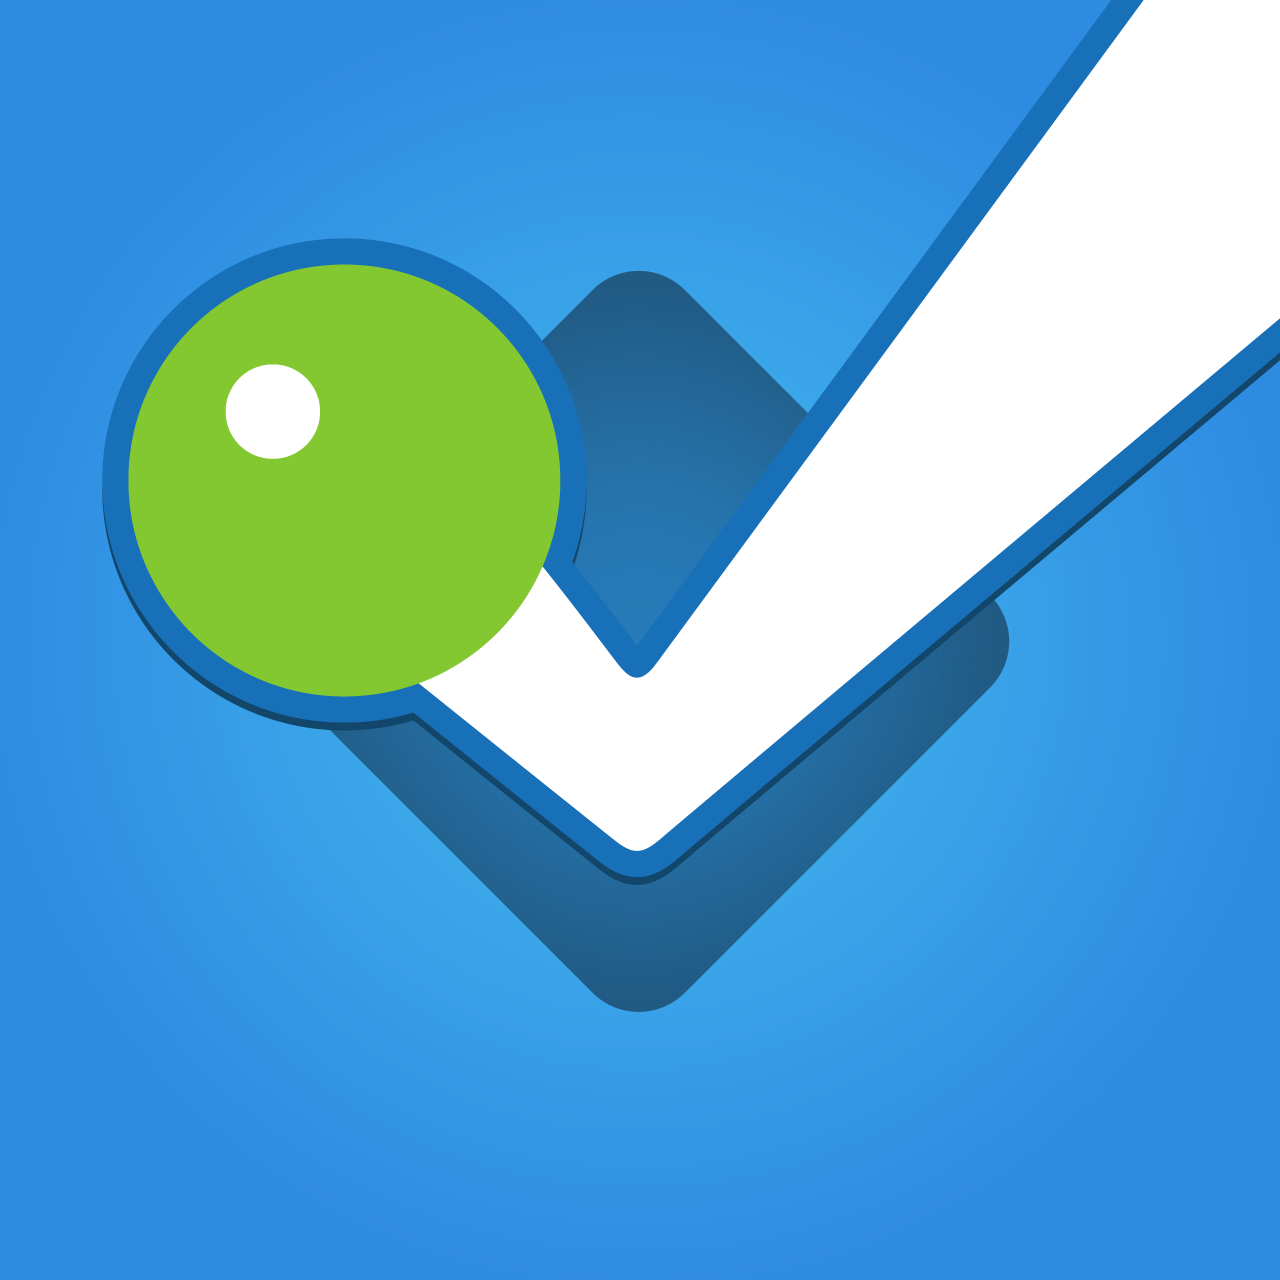 Foursquare Simple Png 1280x1280, Foursquare HD PNG Download